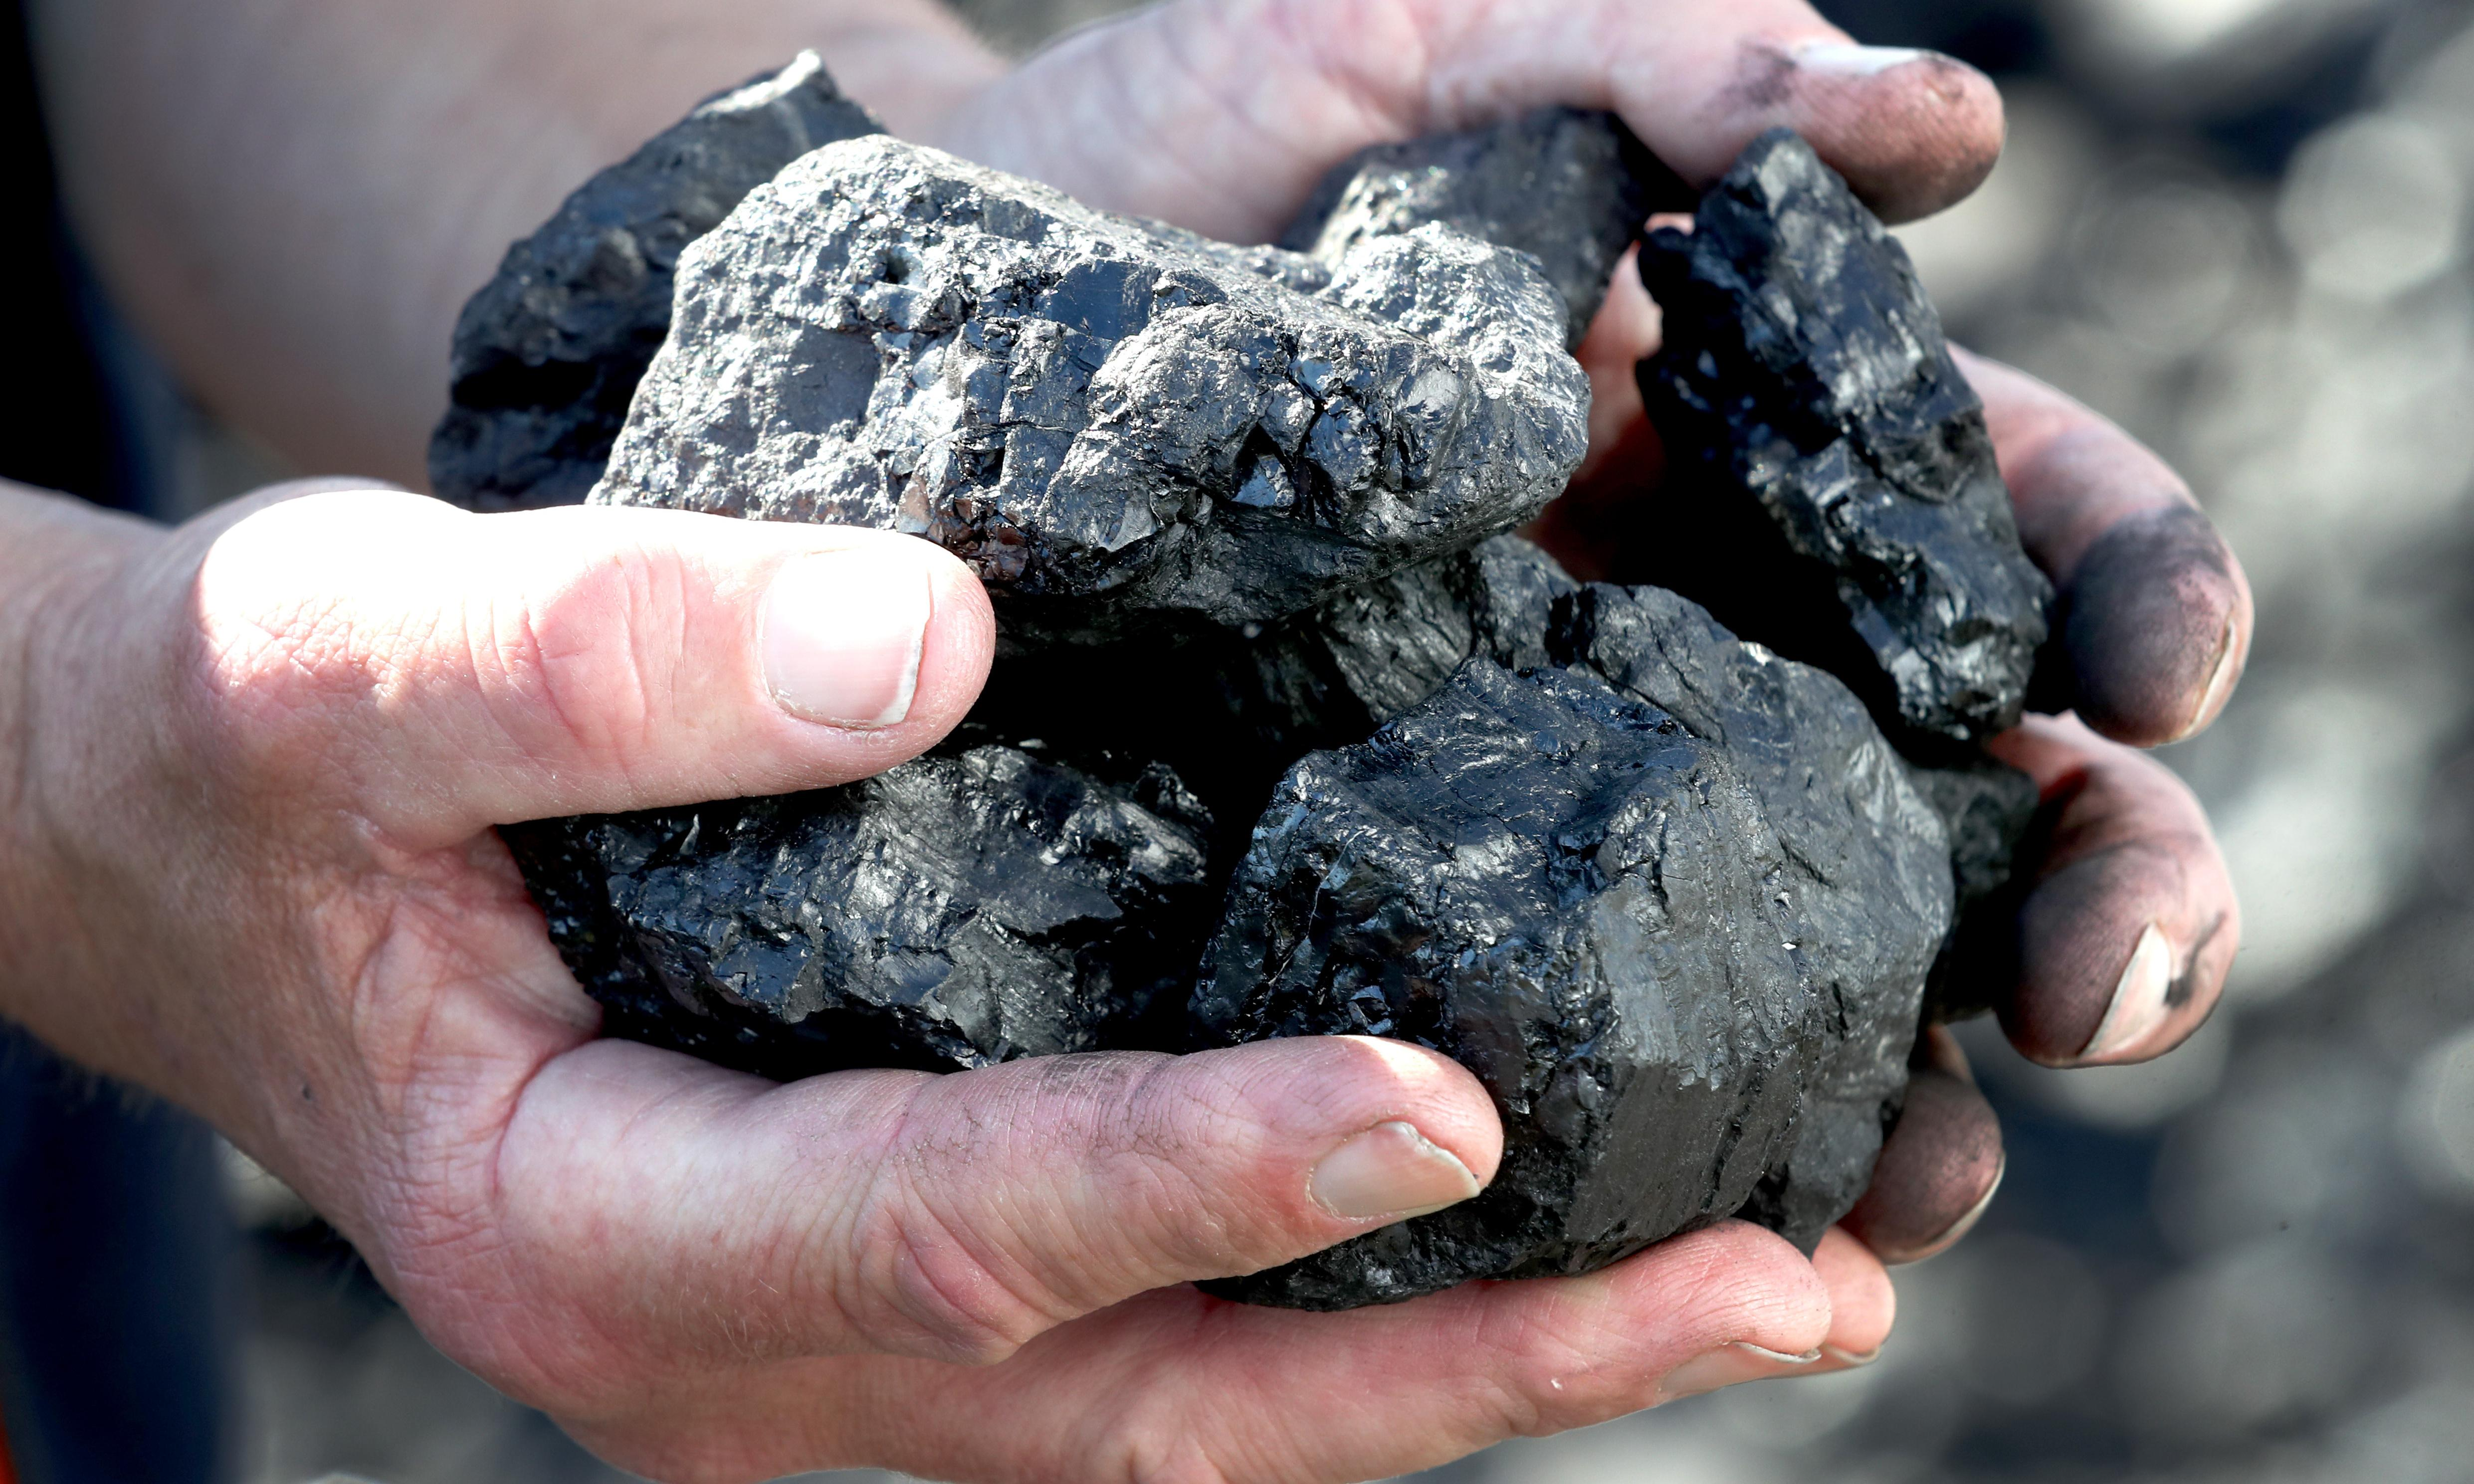 Australia's hopes to expand coal exports in south-east Asia 'delusional', experts say